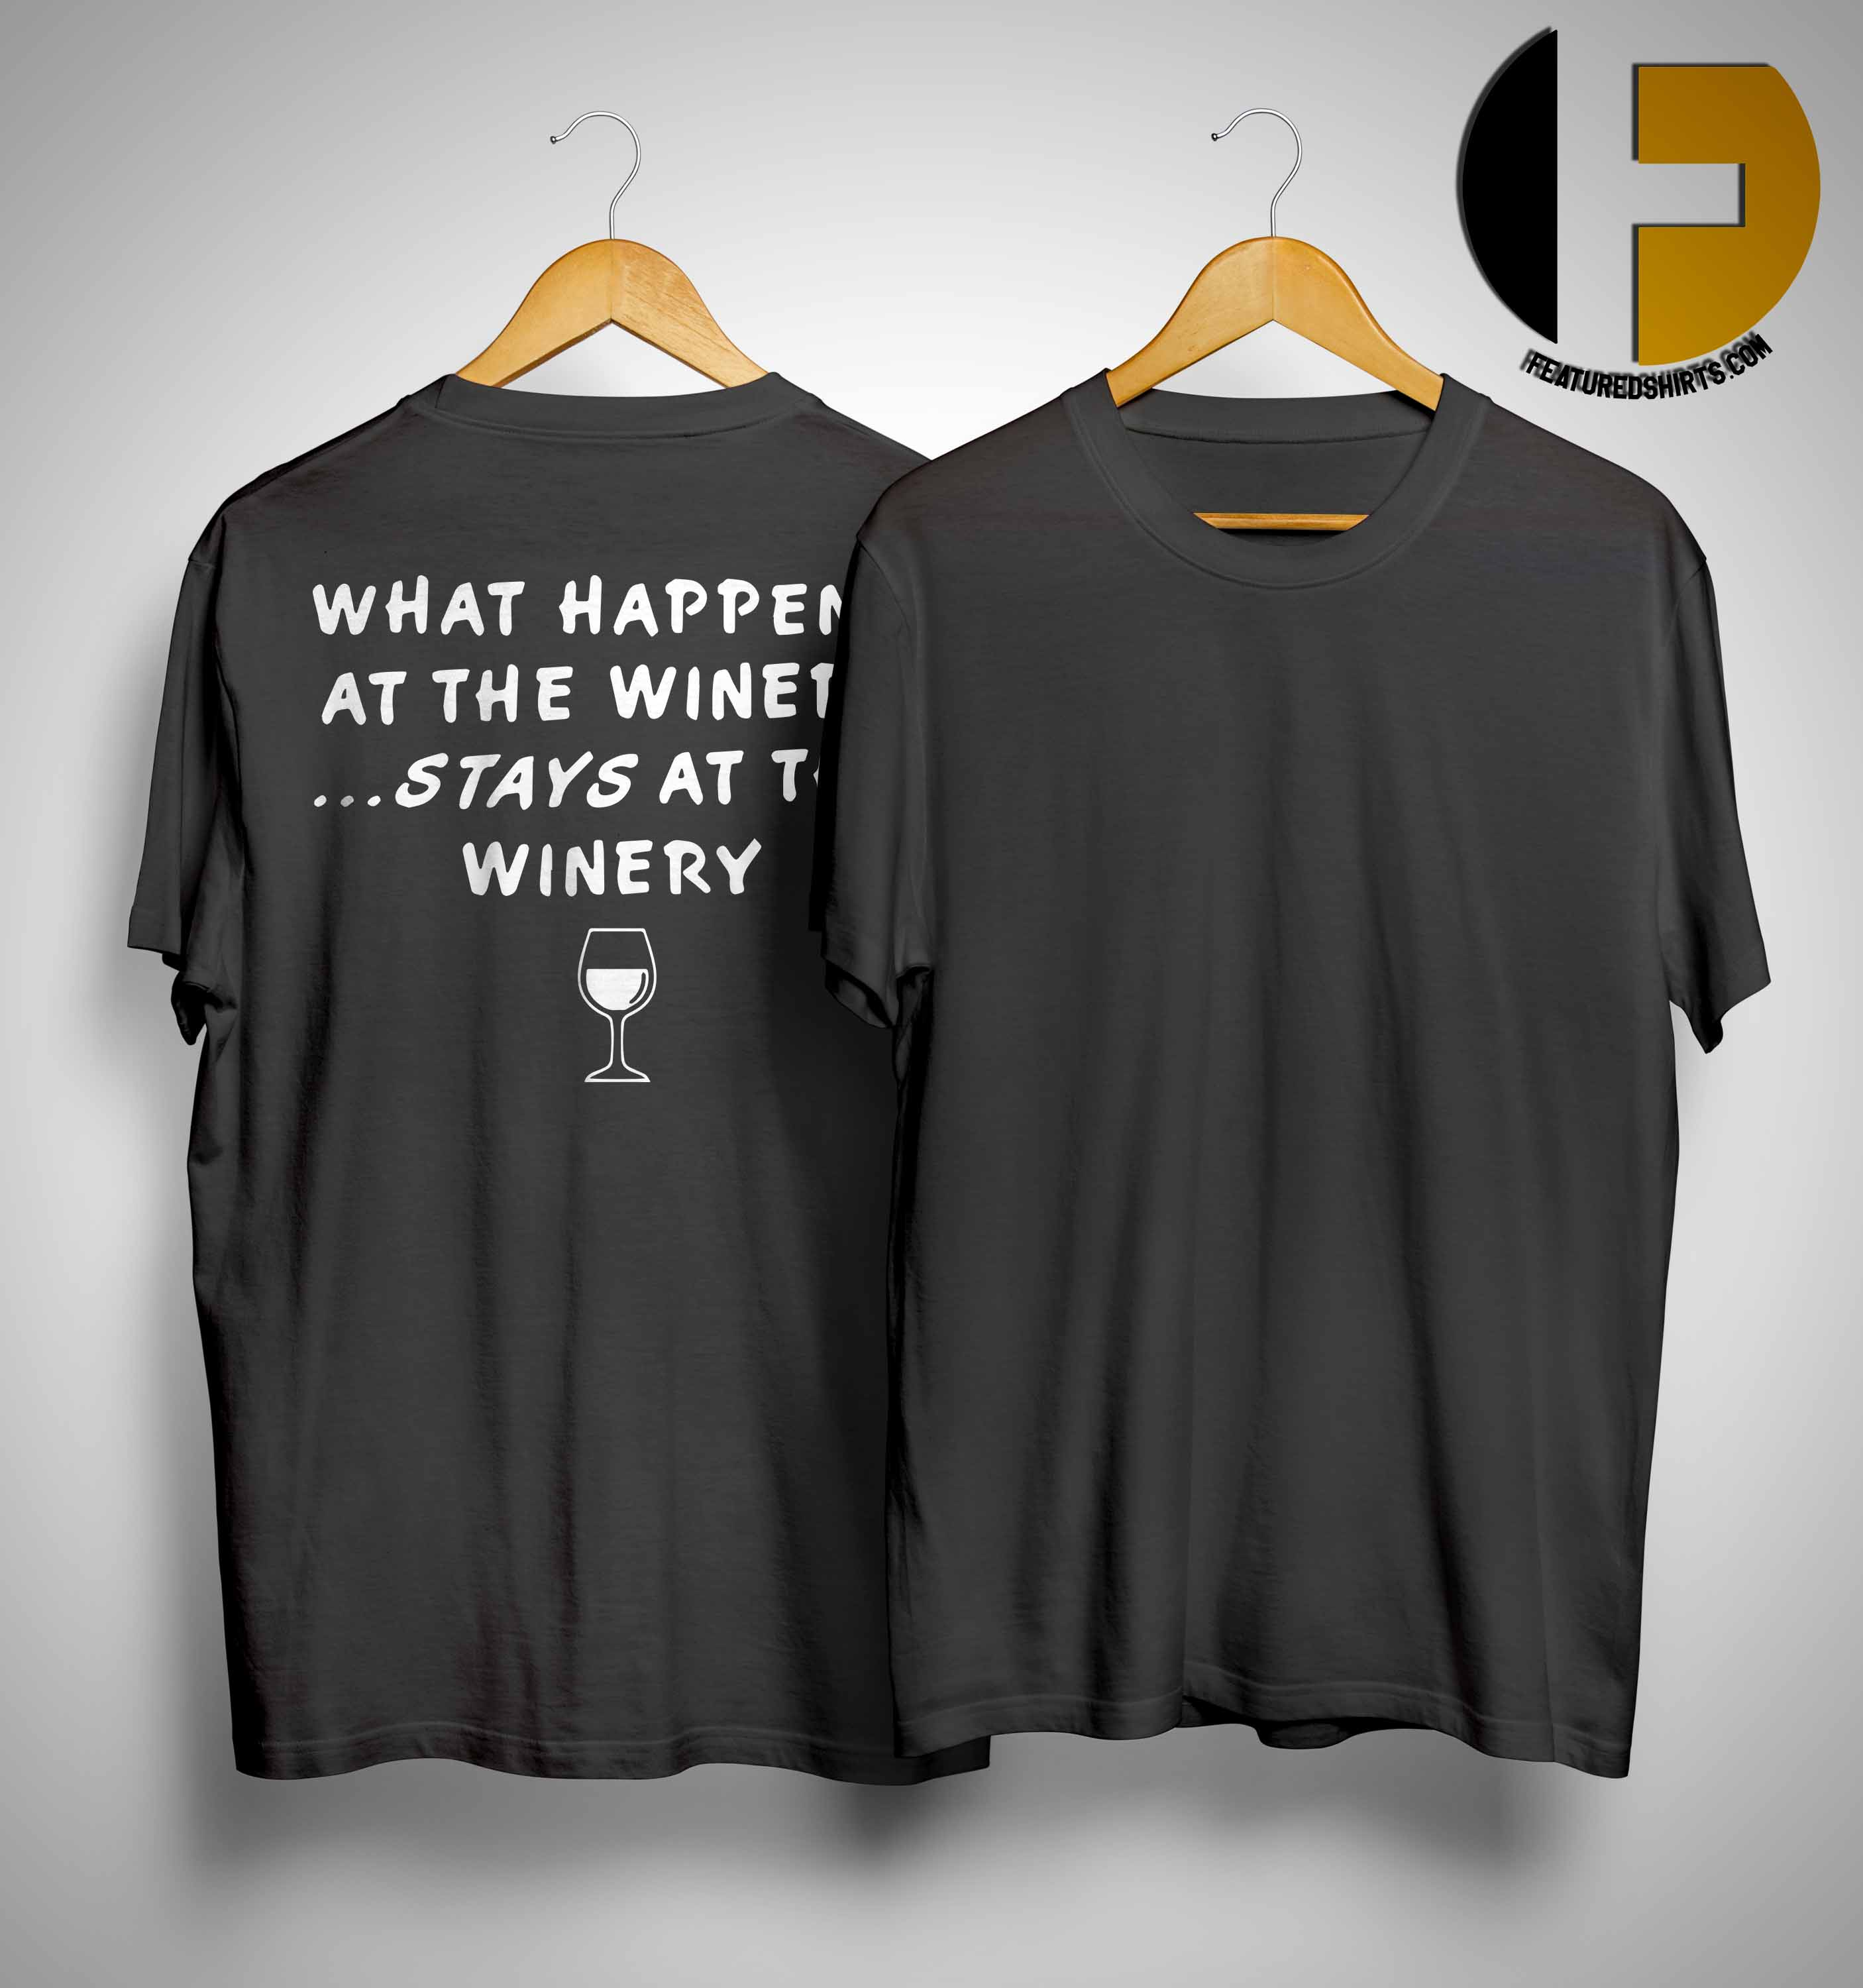 64d46c4c4f62af What Happens At The Winery Stays At The Winery Shirt